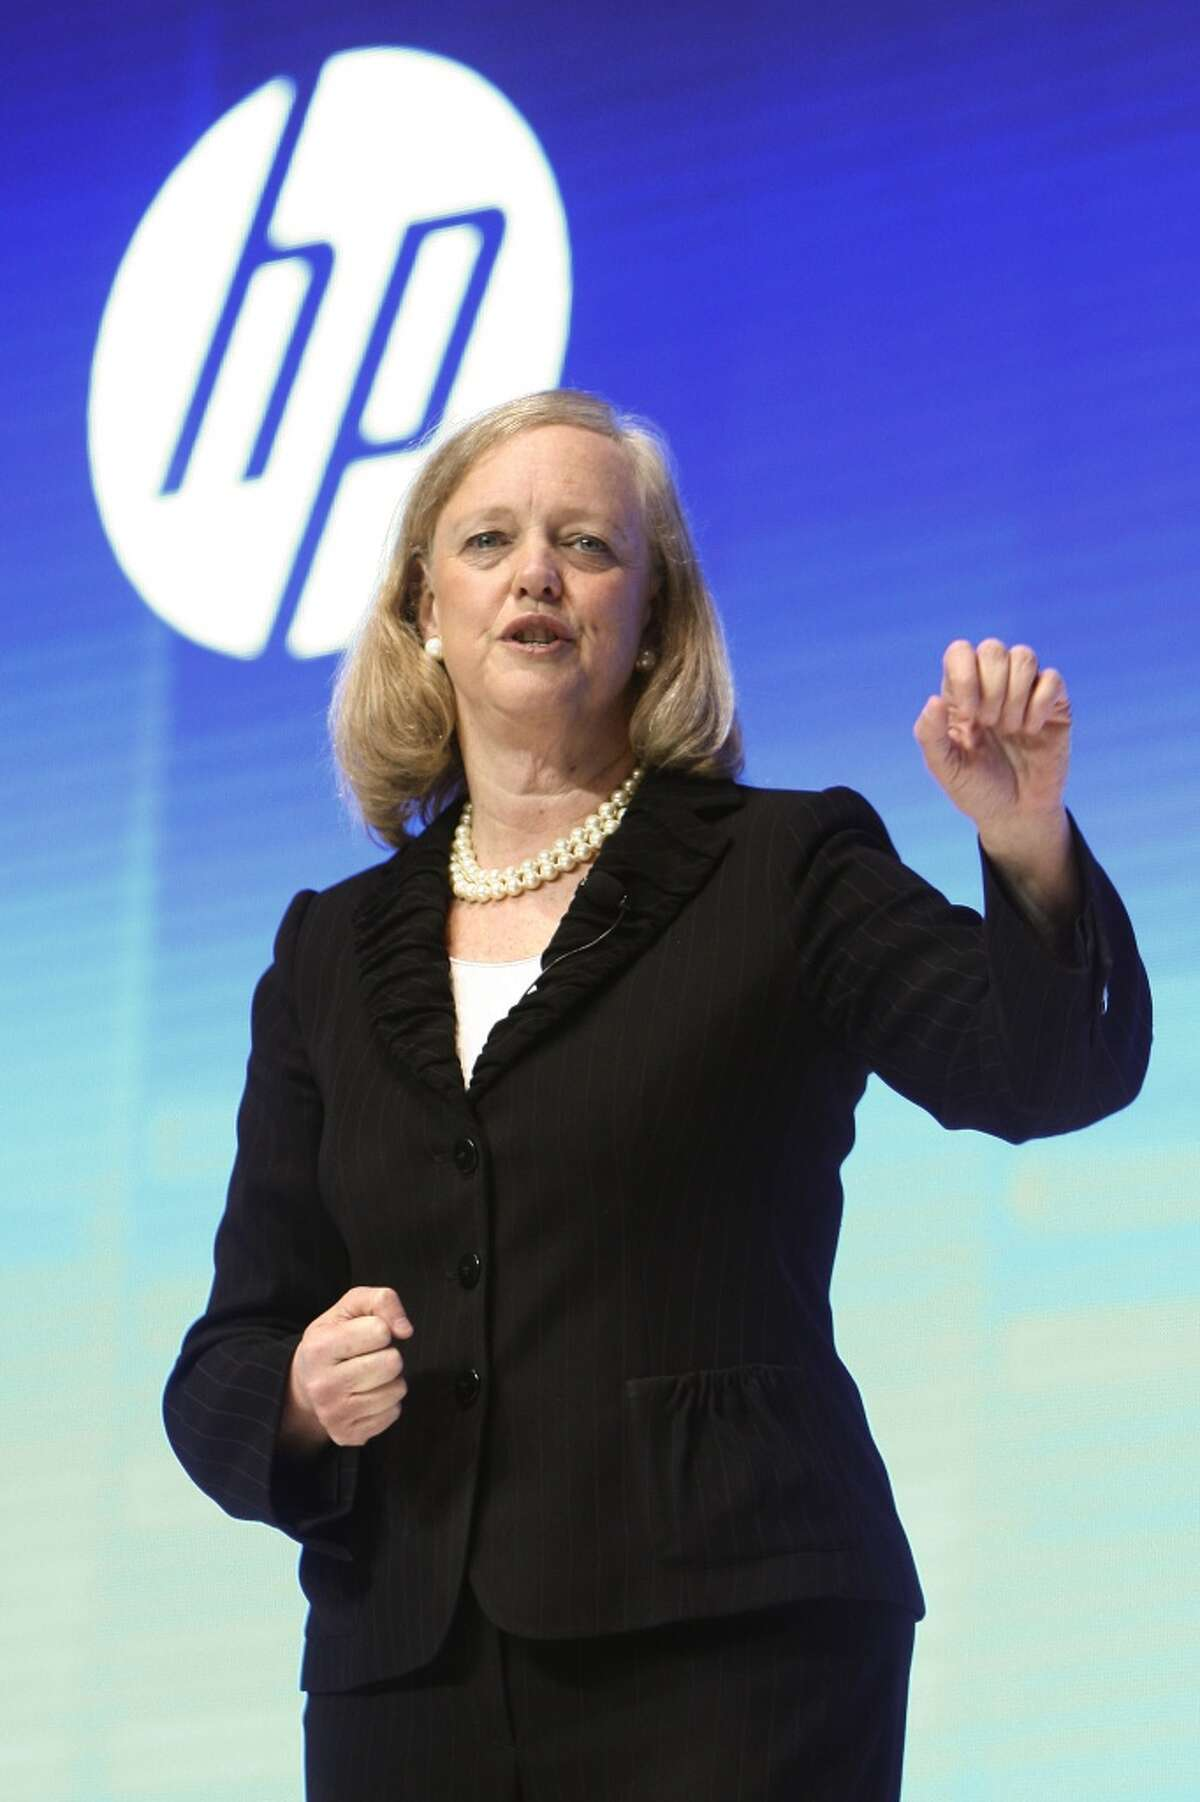 Meg Whitman, president-CEO of Hewlett-Packard The CEO made a $1 base salary, but she made $15.4 million in total compensation in 2012, according to Reuters. Most came in the form of stock options, stock awards and other income. Source: CNNMoney